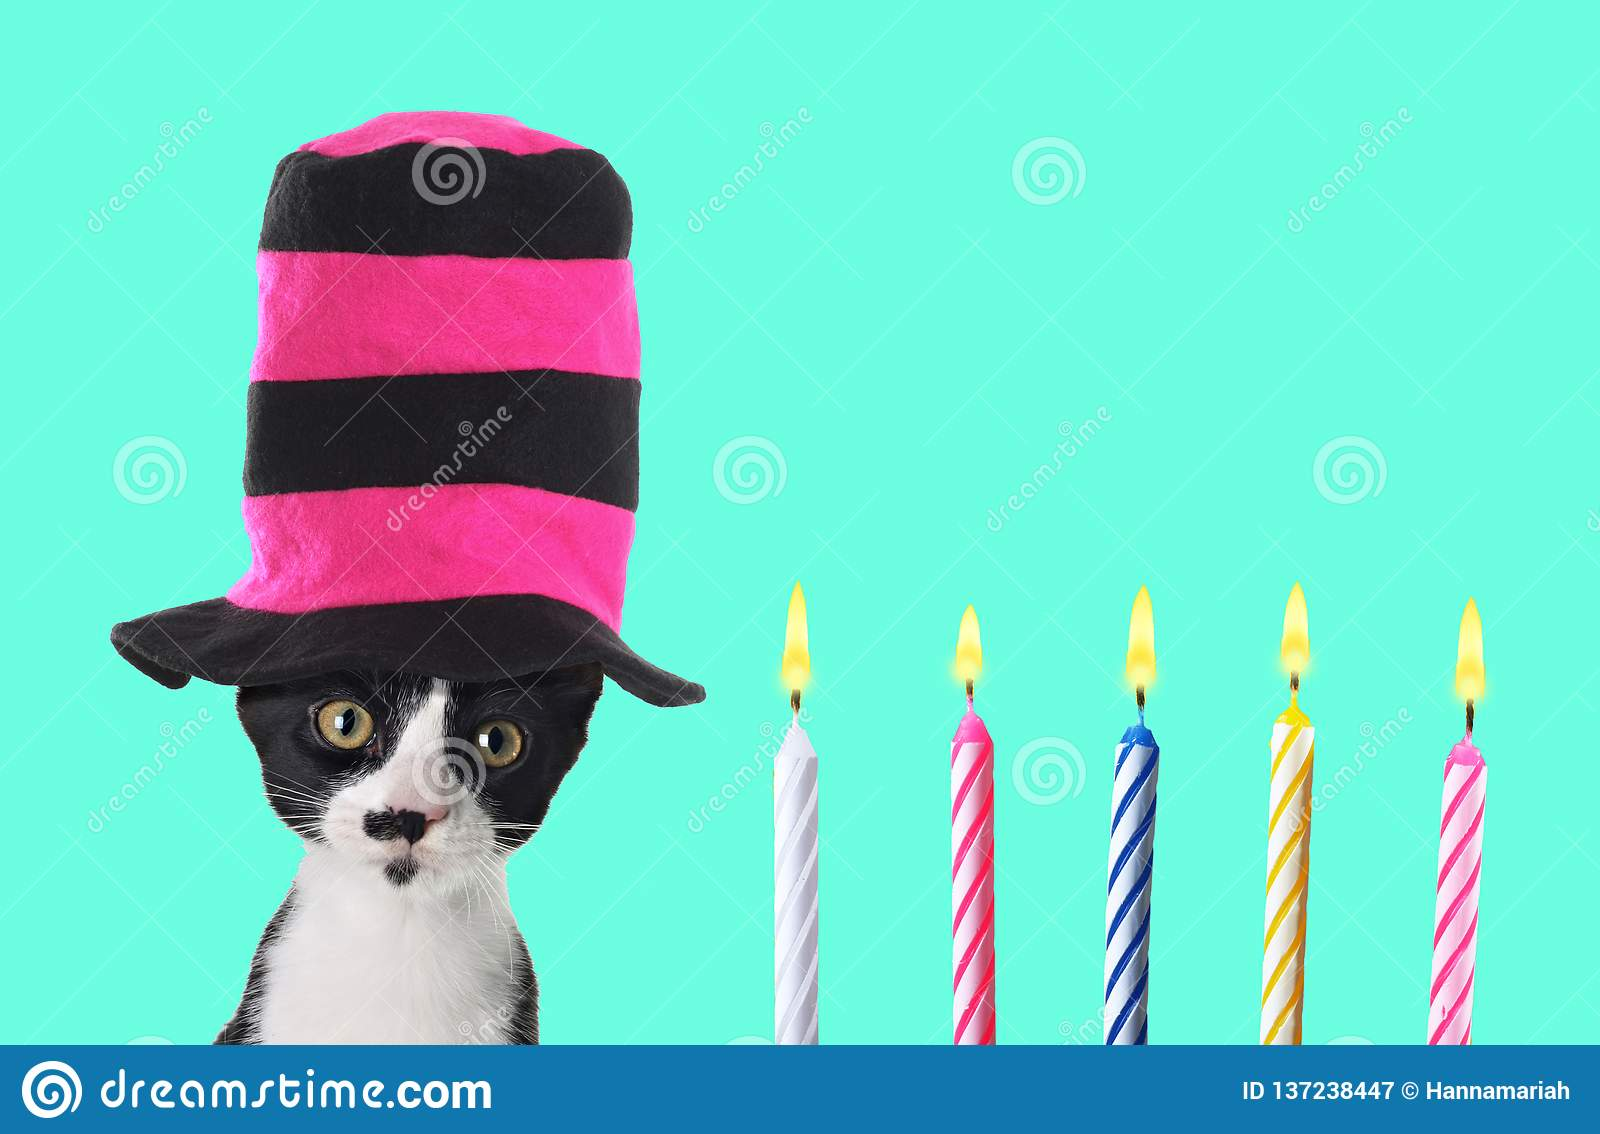 Funny Retro Birthday Kitten With Colorful Top Hat